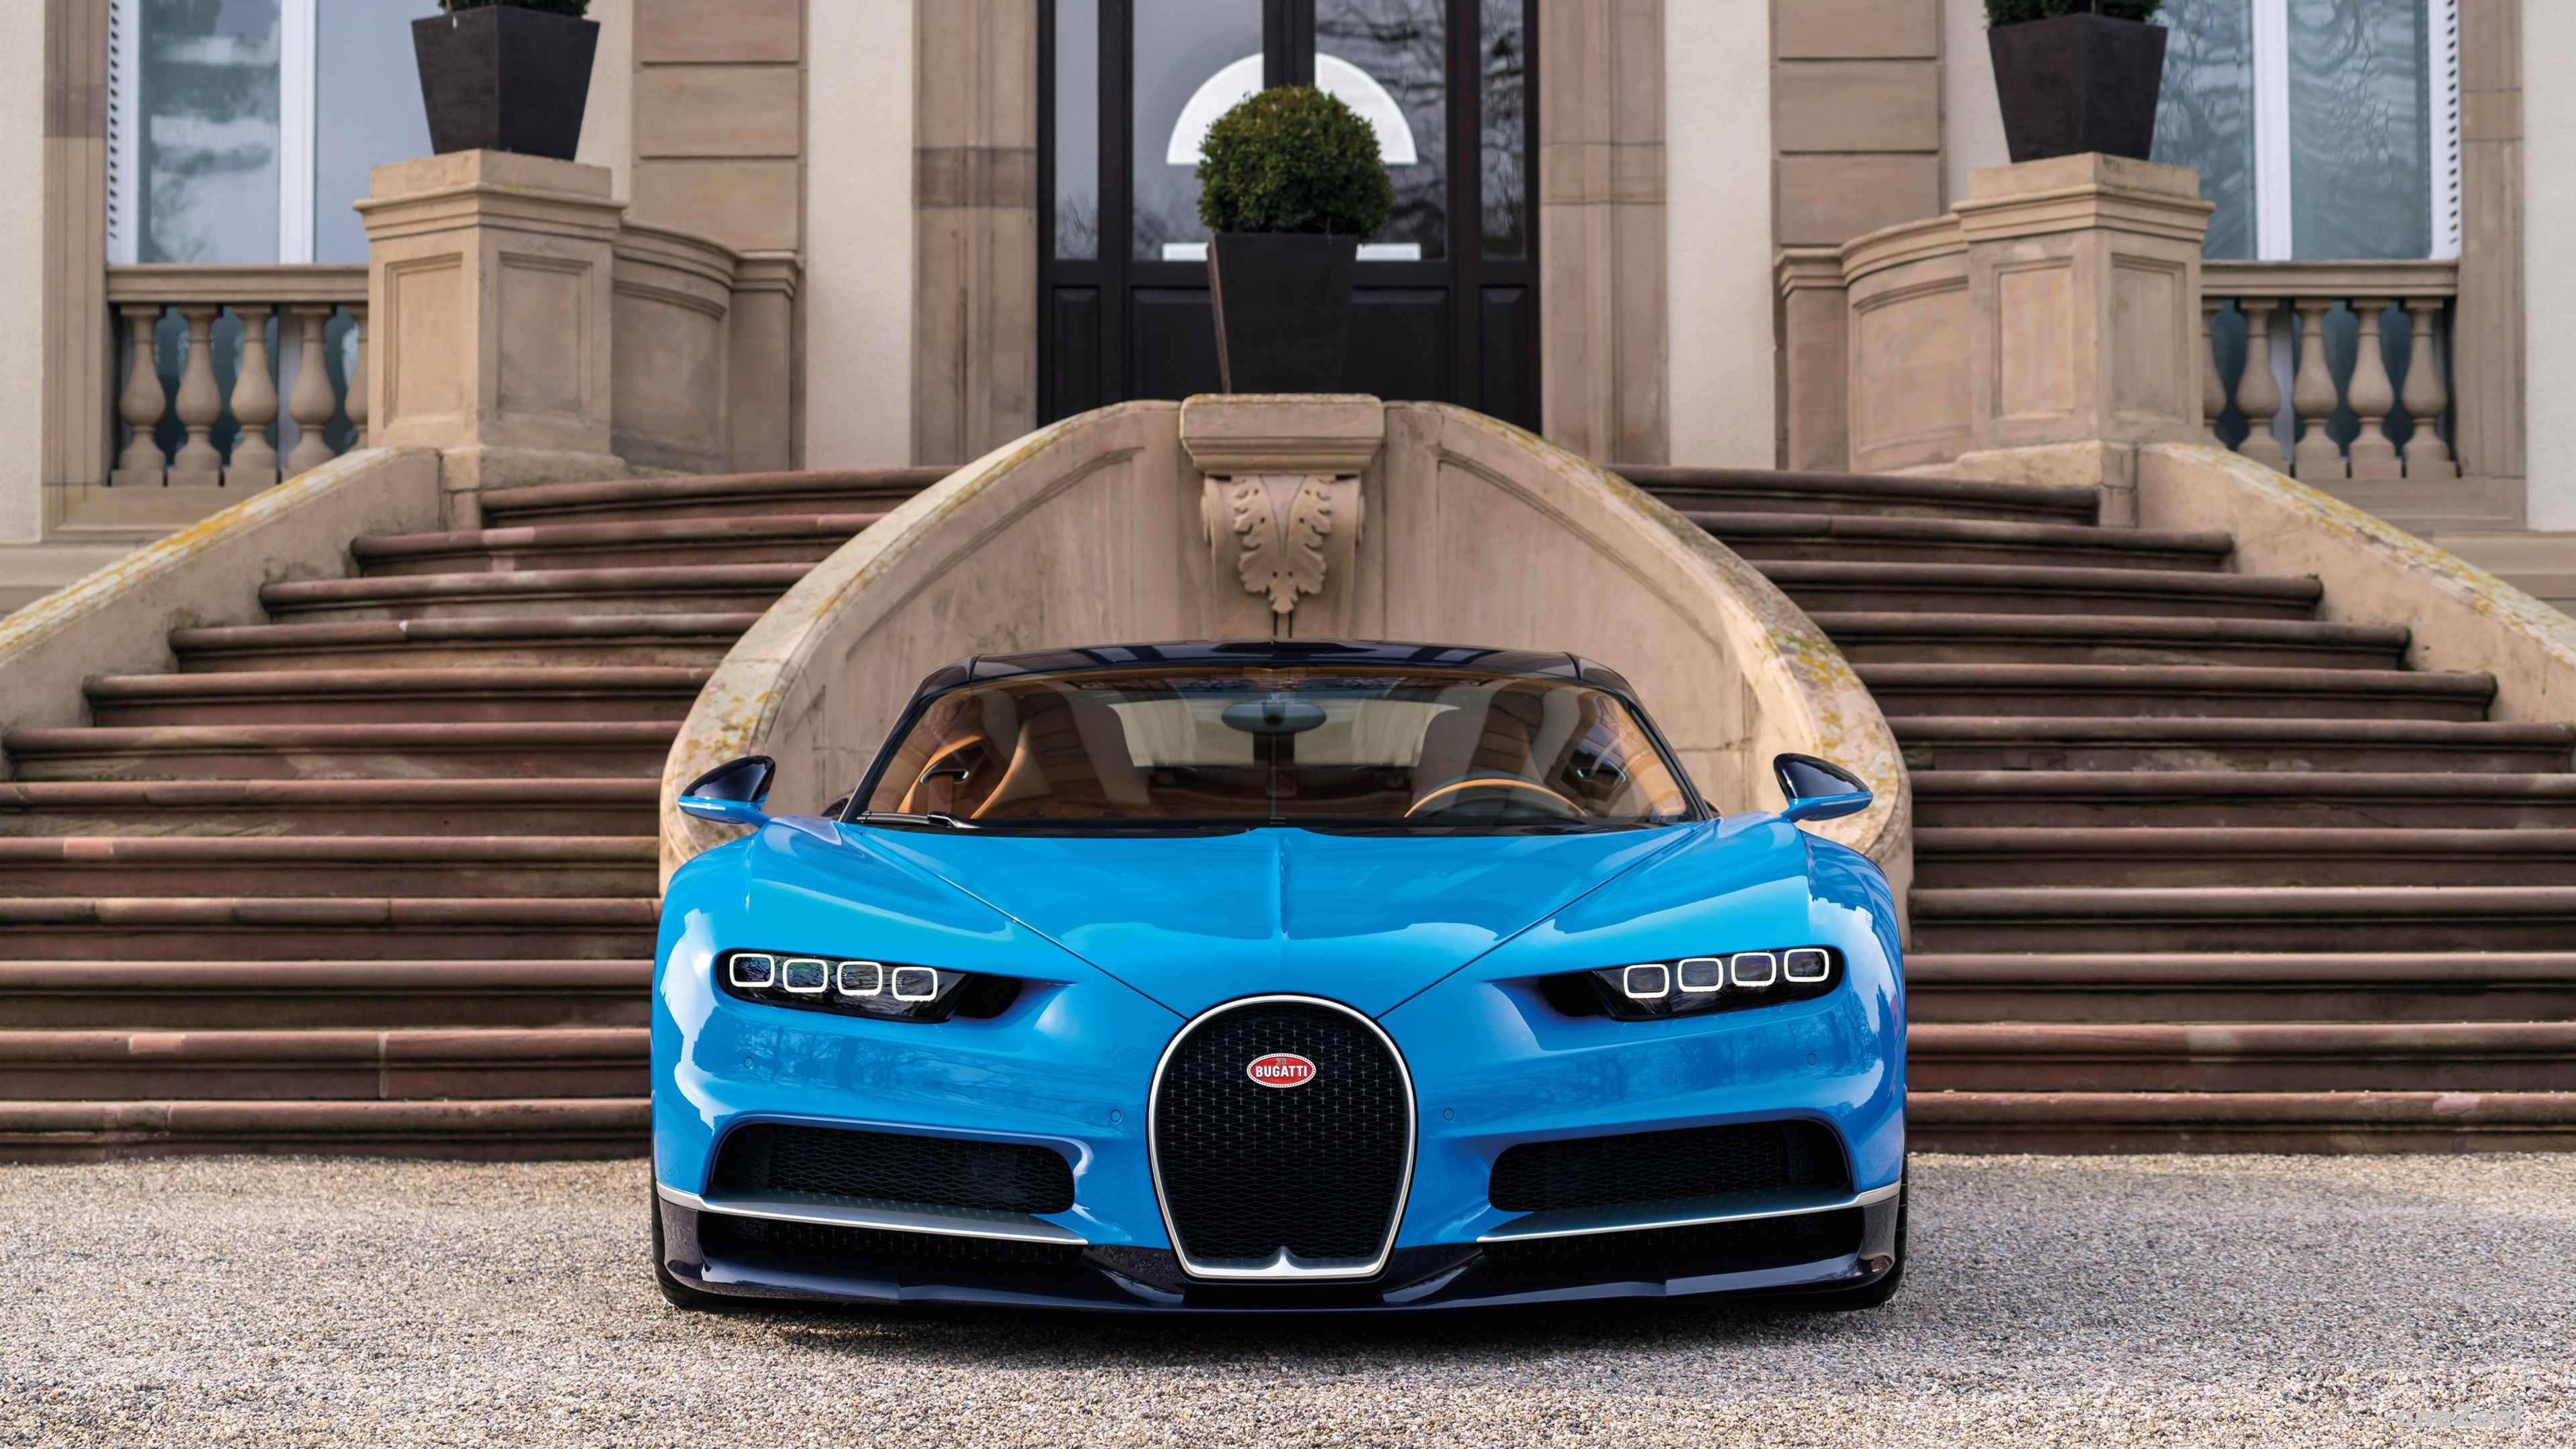 da8d0eb6c0d834c72e291b03b8e614db Fascinating Bugatti Veyron Price south African Rands Cars Trend